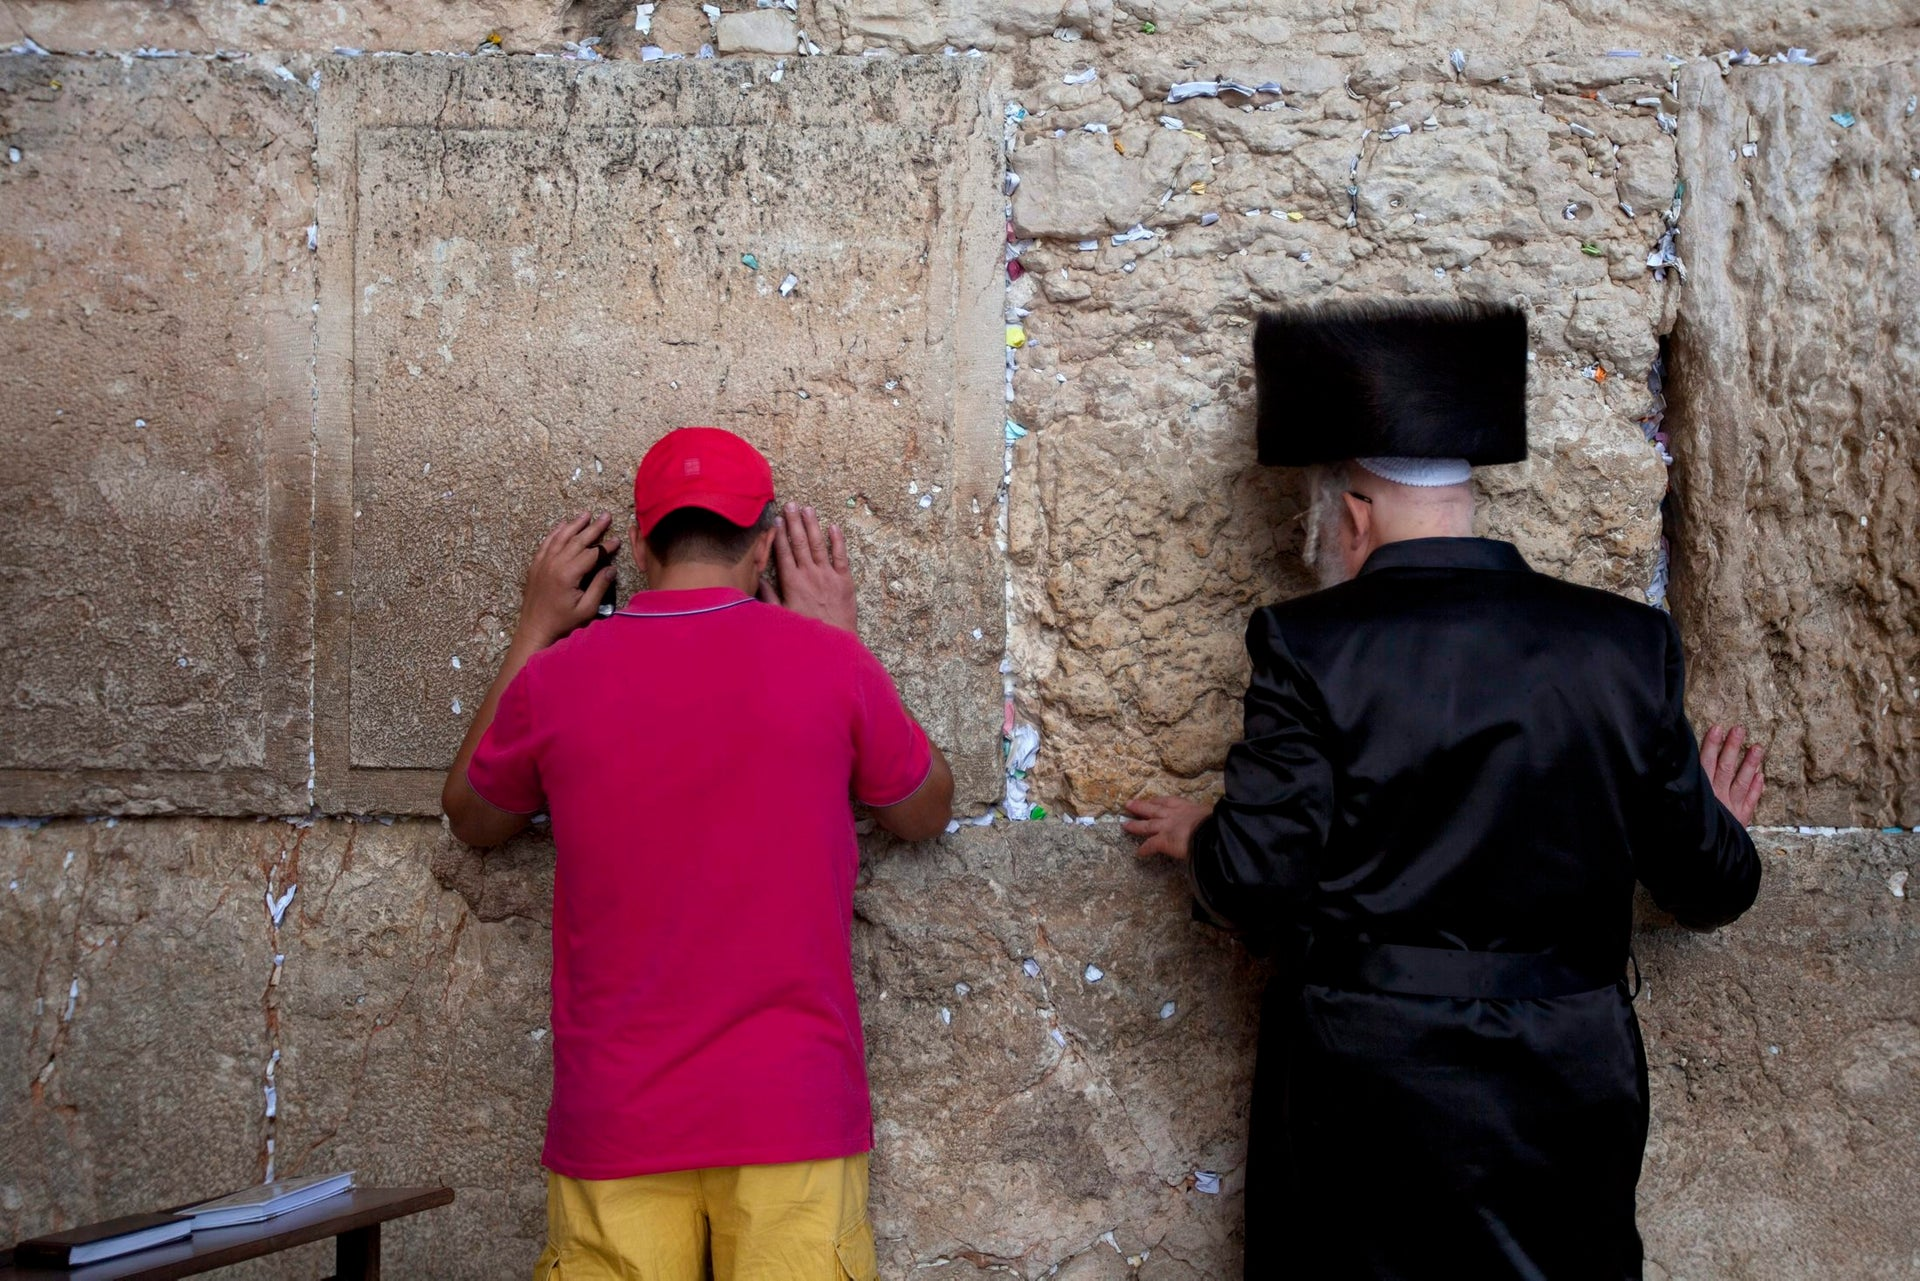 An Orthodox Jew, right, and a non-Orthodox praying at the Western Wall, the last remnant of the wall surrounding the Second Temple Courtyard